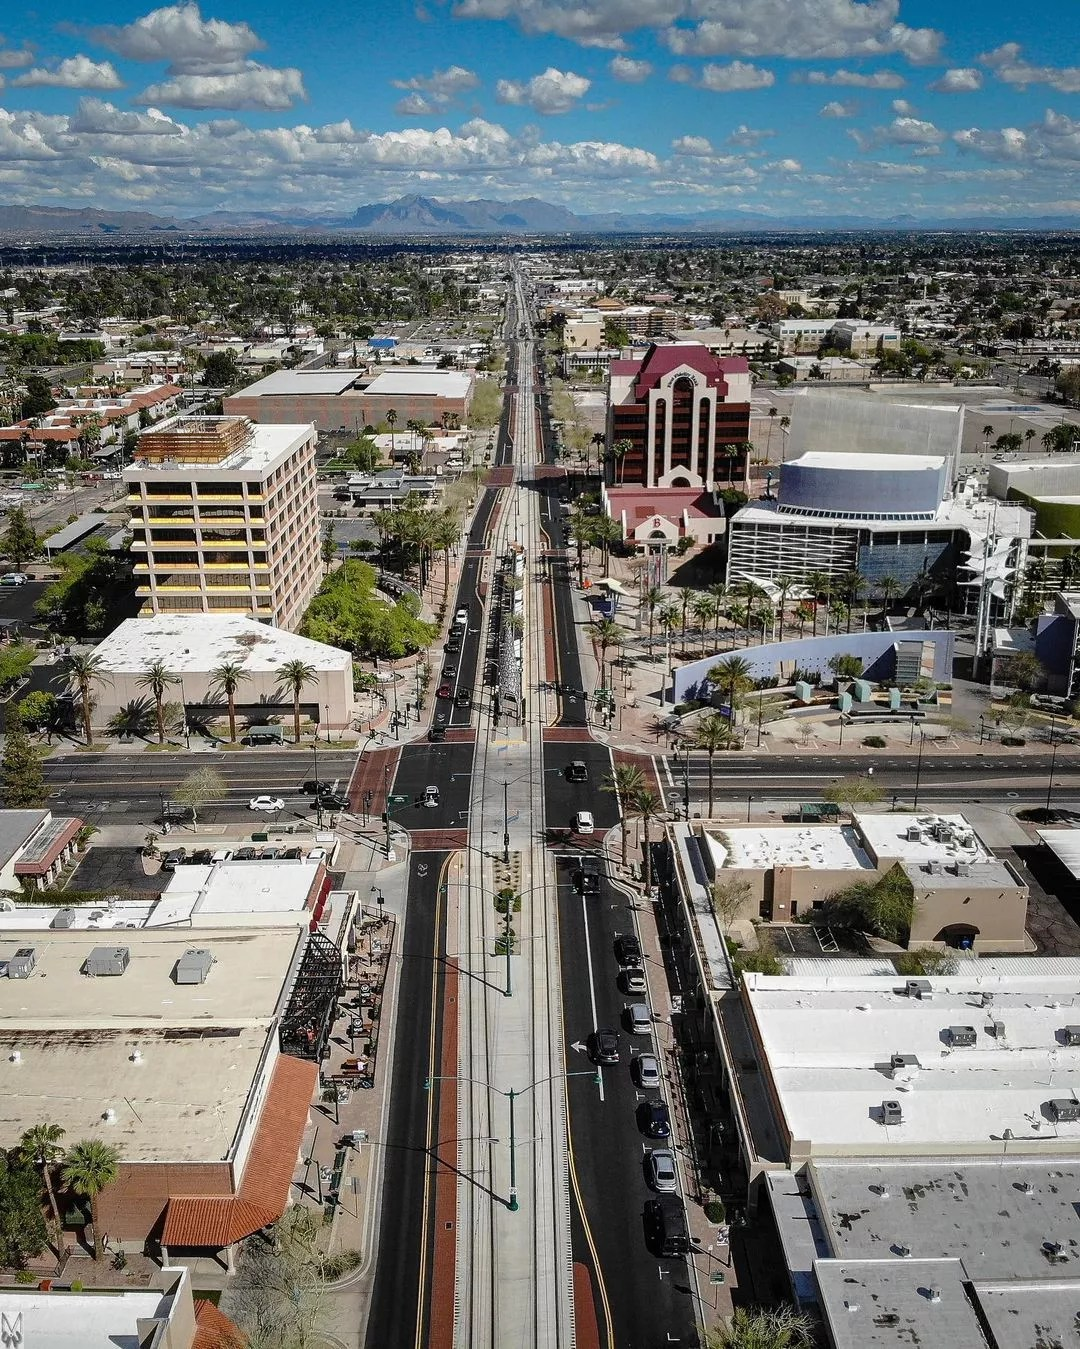 Drone Photo of Downtown Mesa. Photo by Instagram user @m44photography